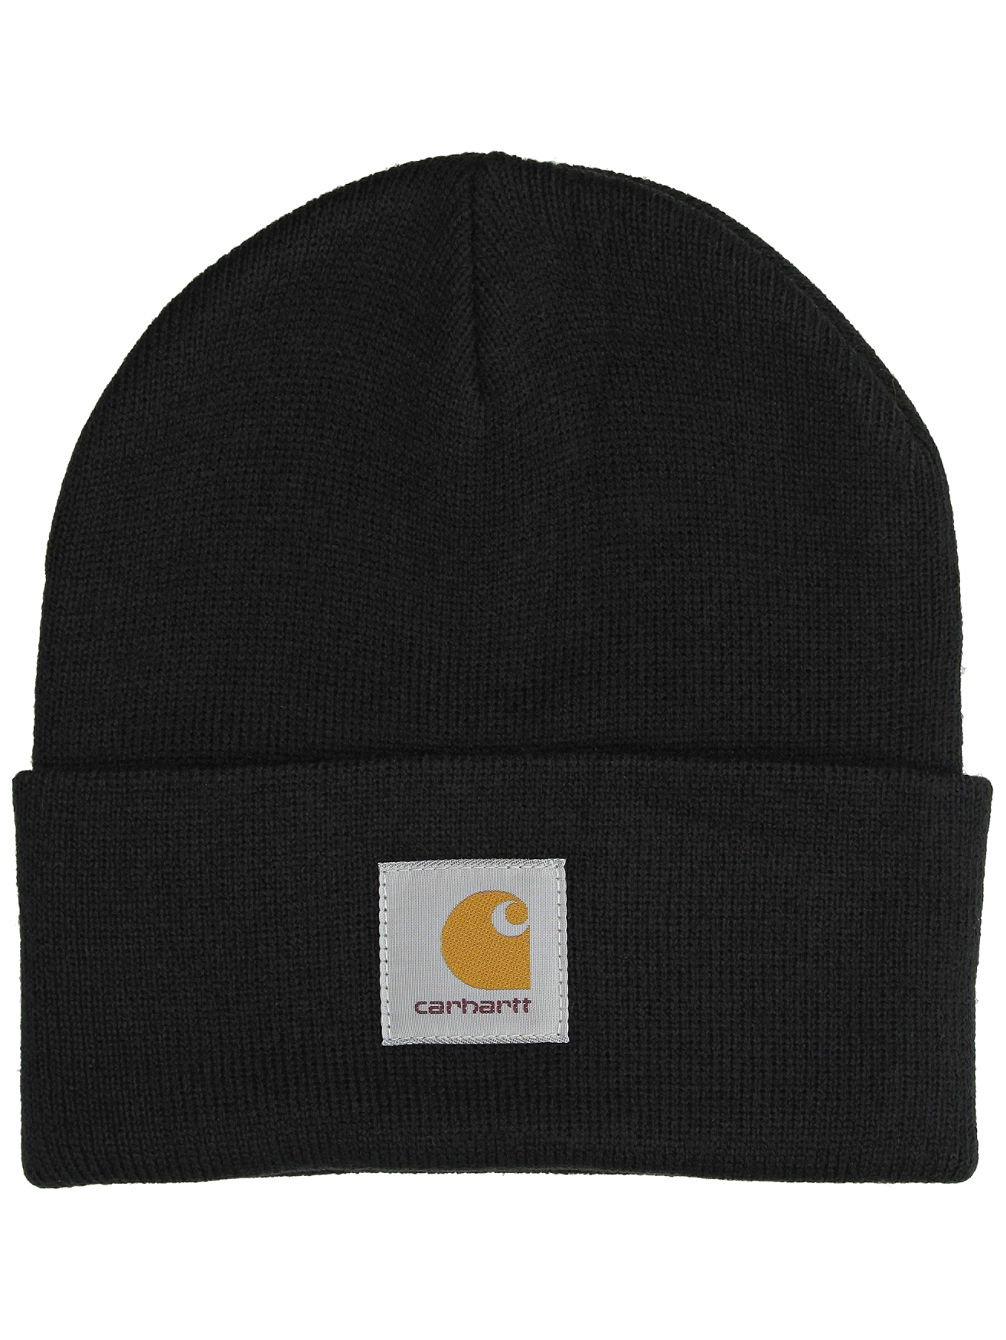 Buy Carhartt WIP Short Watch Beanie online at blue-tomato.com 69f24c351ce